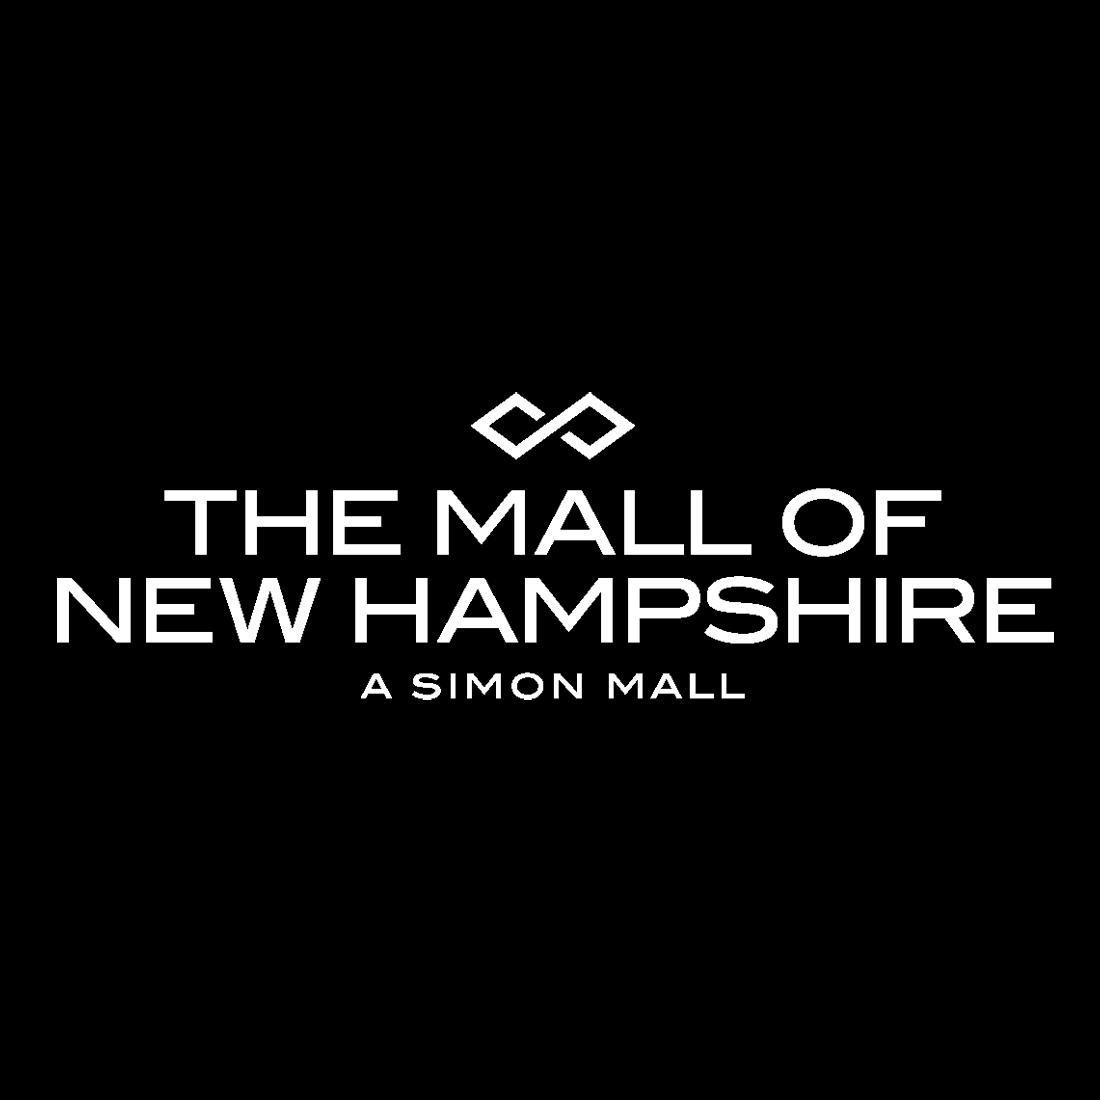 The Mall of New Hampshire